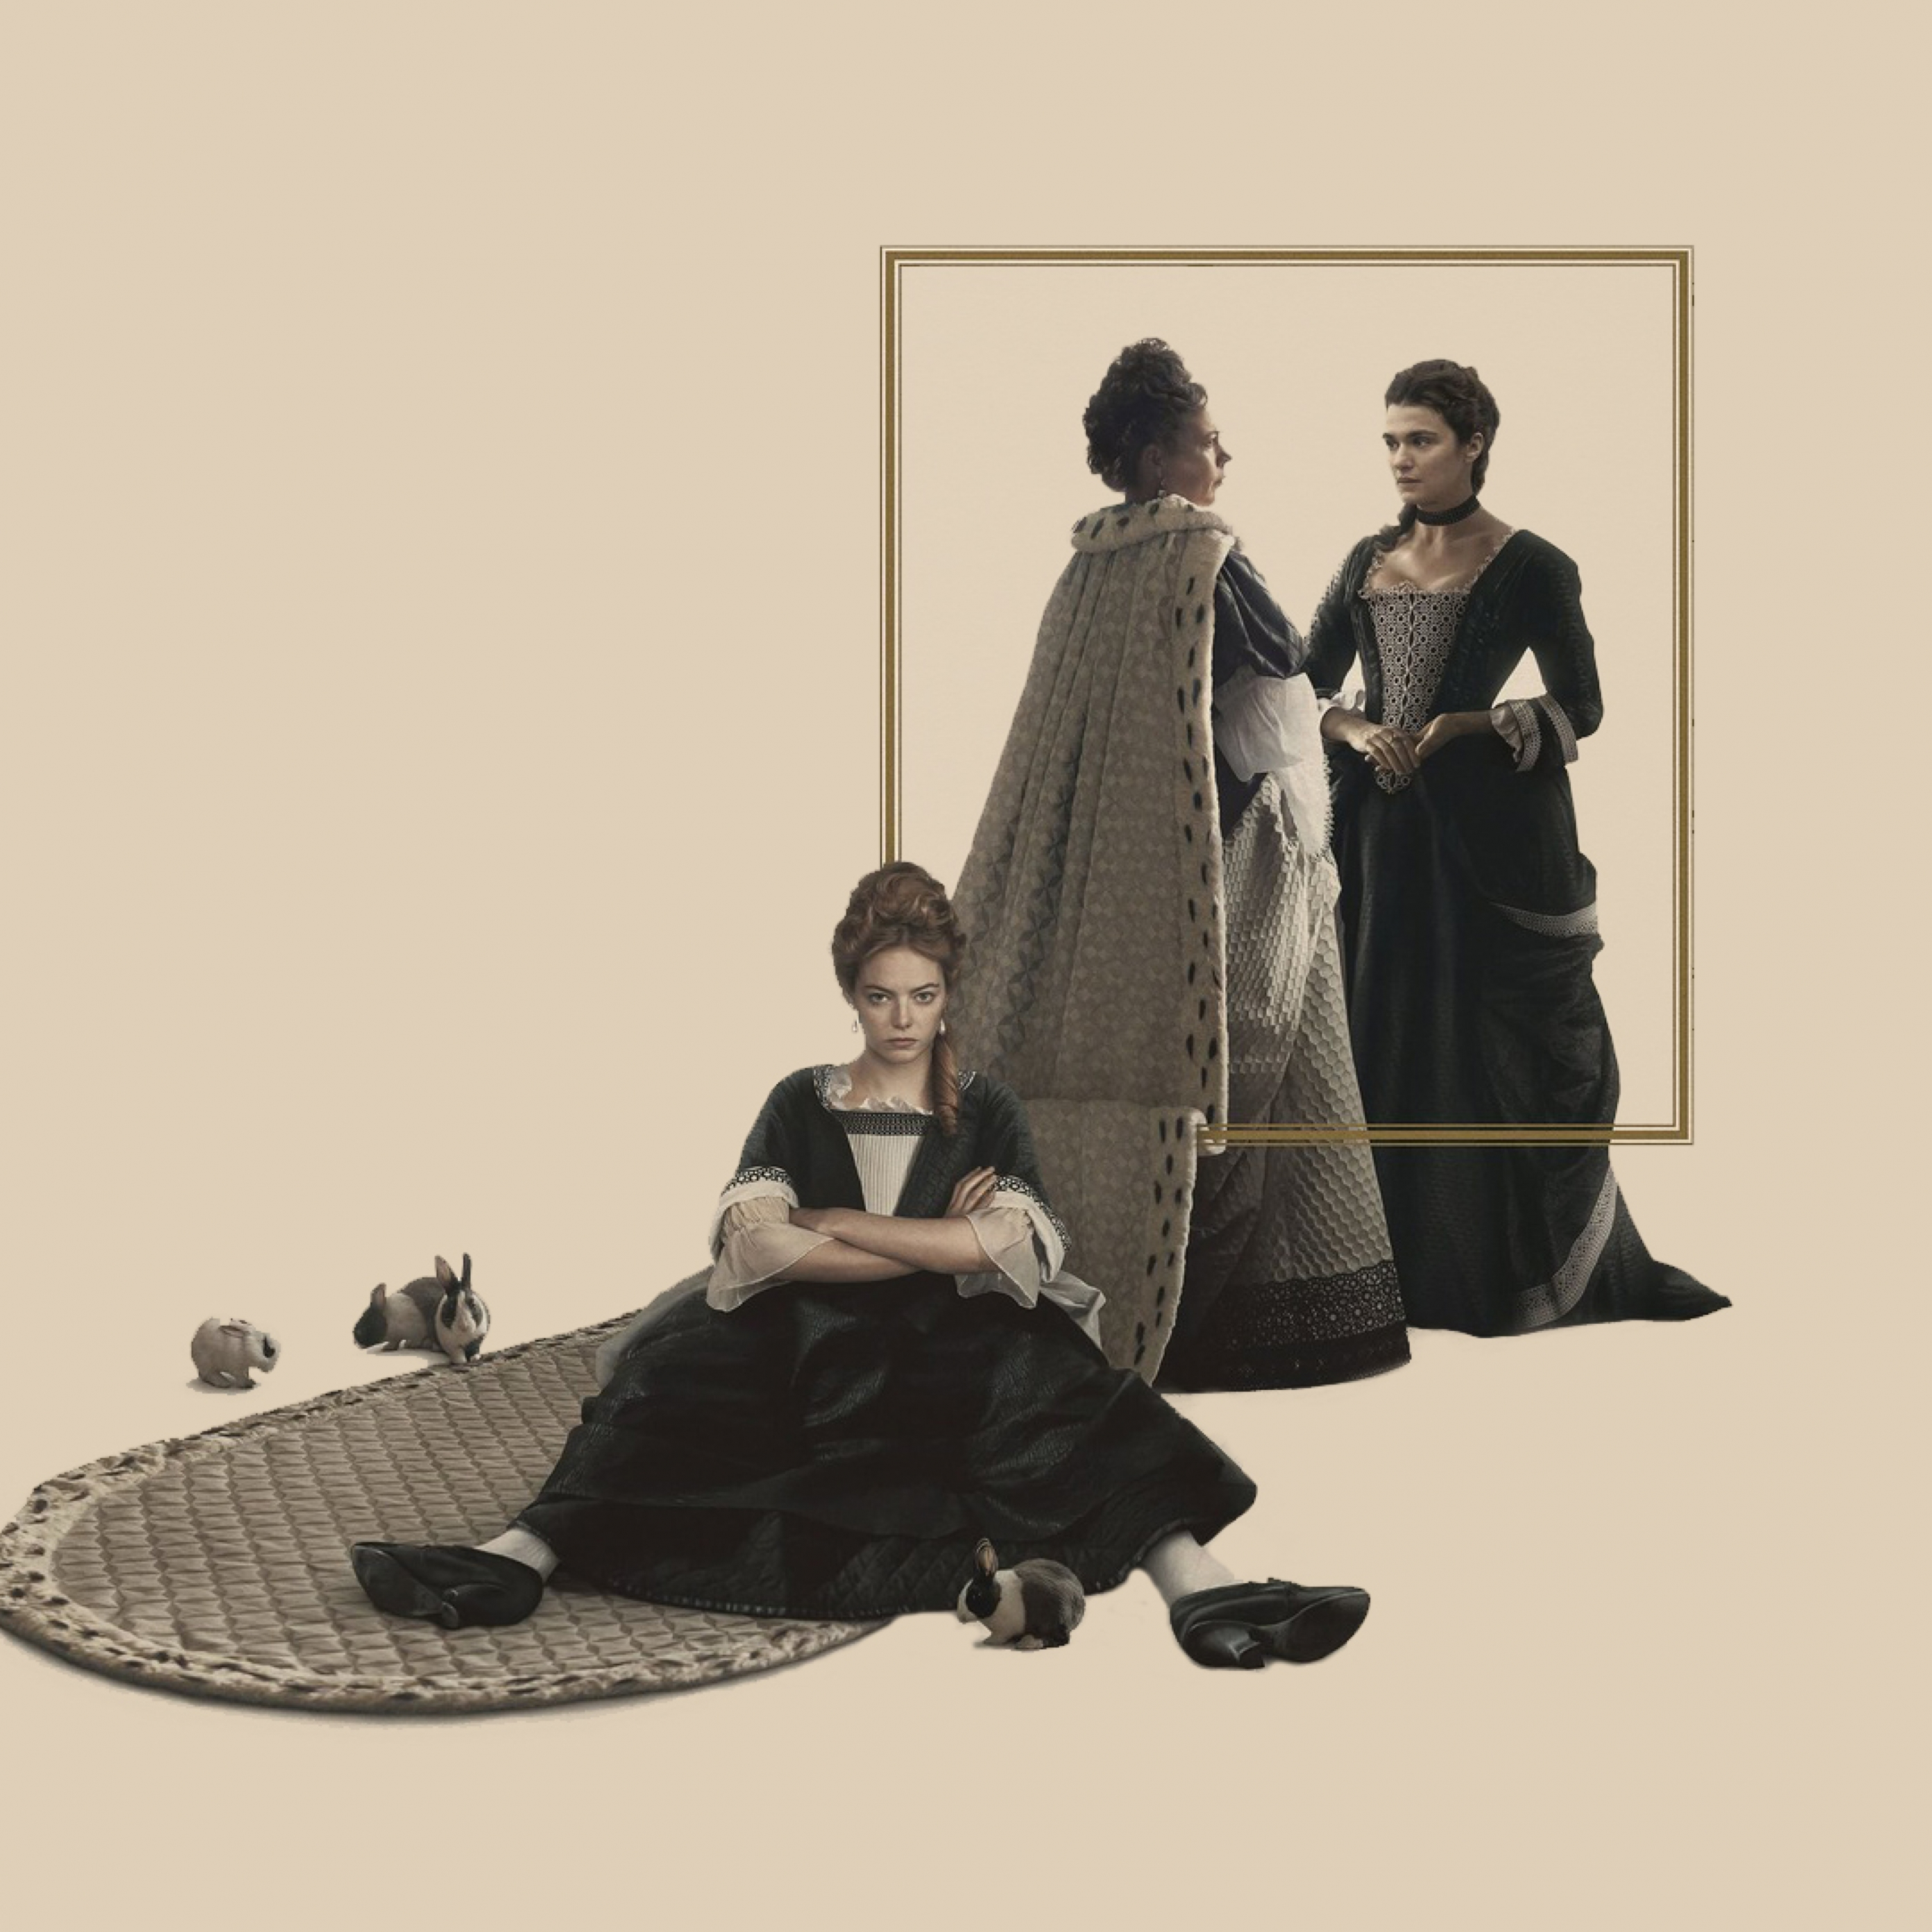 Download The Favourite 2018 Movie Poster Apple iPad Air wallpaper 2780x2780